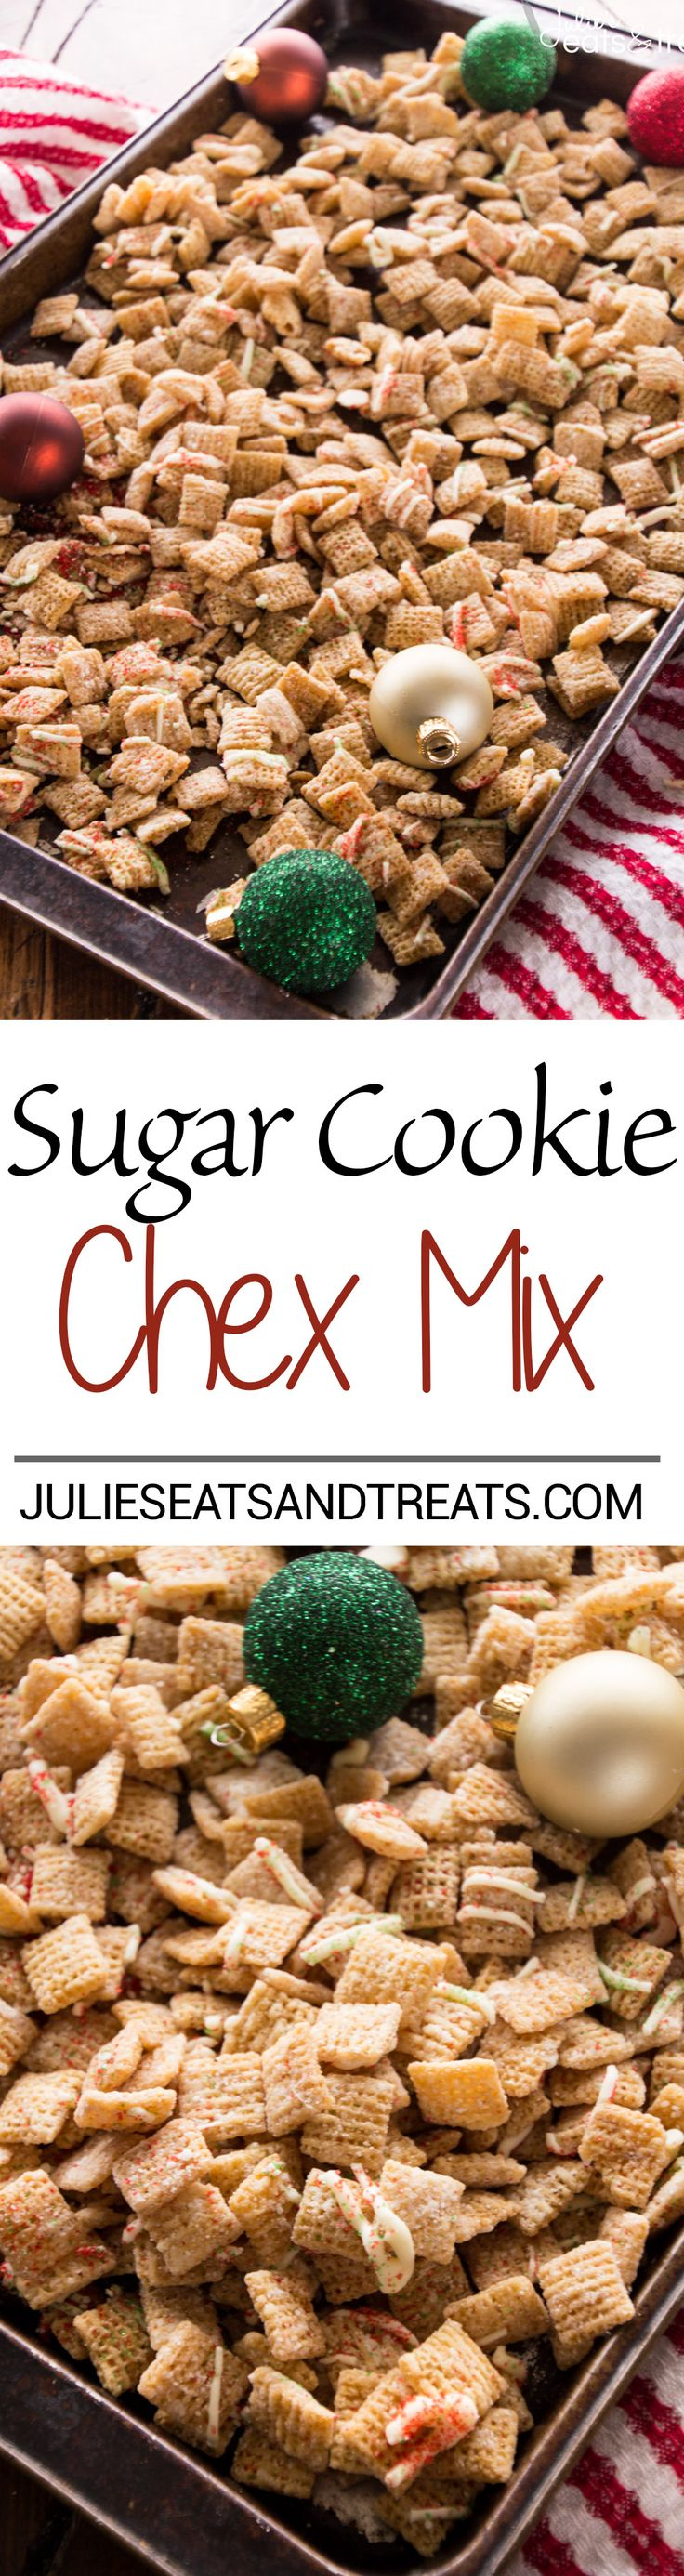 Sugar Cookie Chex Mix Recipe ~ Celebrate the Holidays with this Fast and Easy Snack Mix Recipe that tastes just like Sugar Cookies! on MyRecipeMagic.com